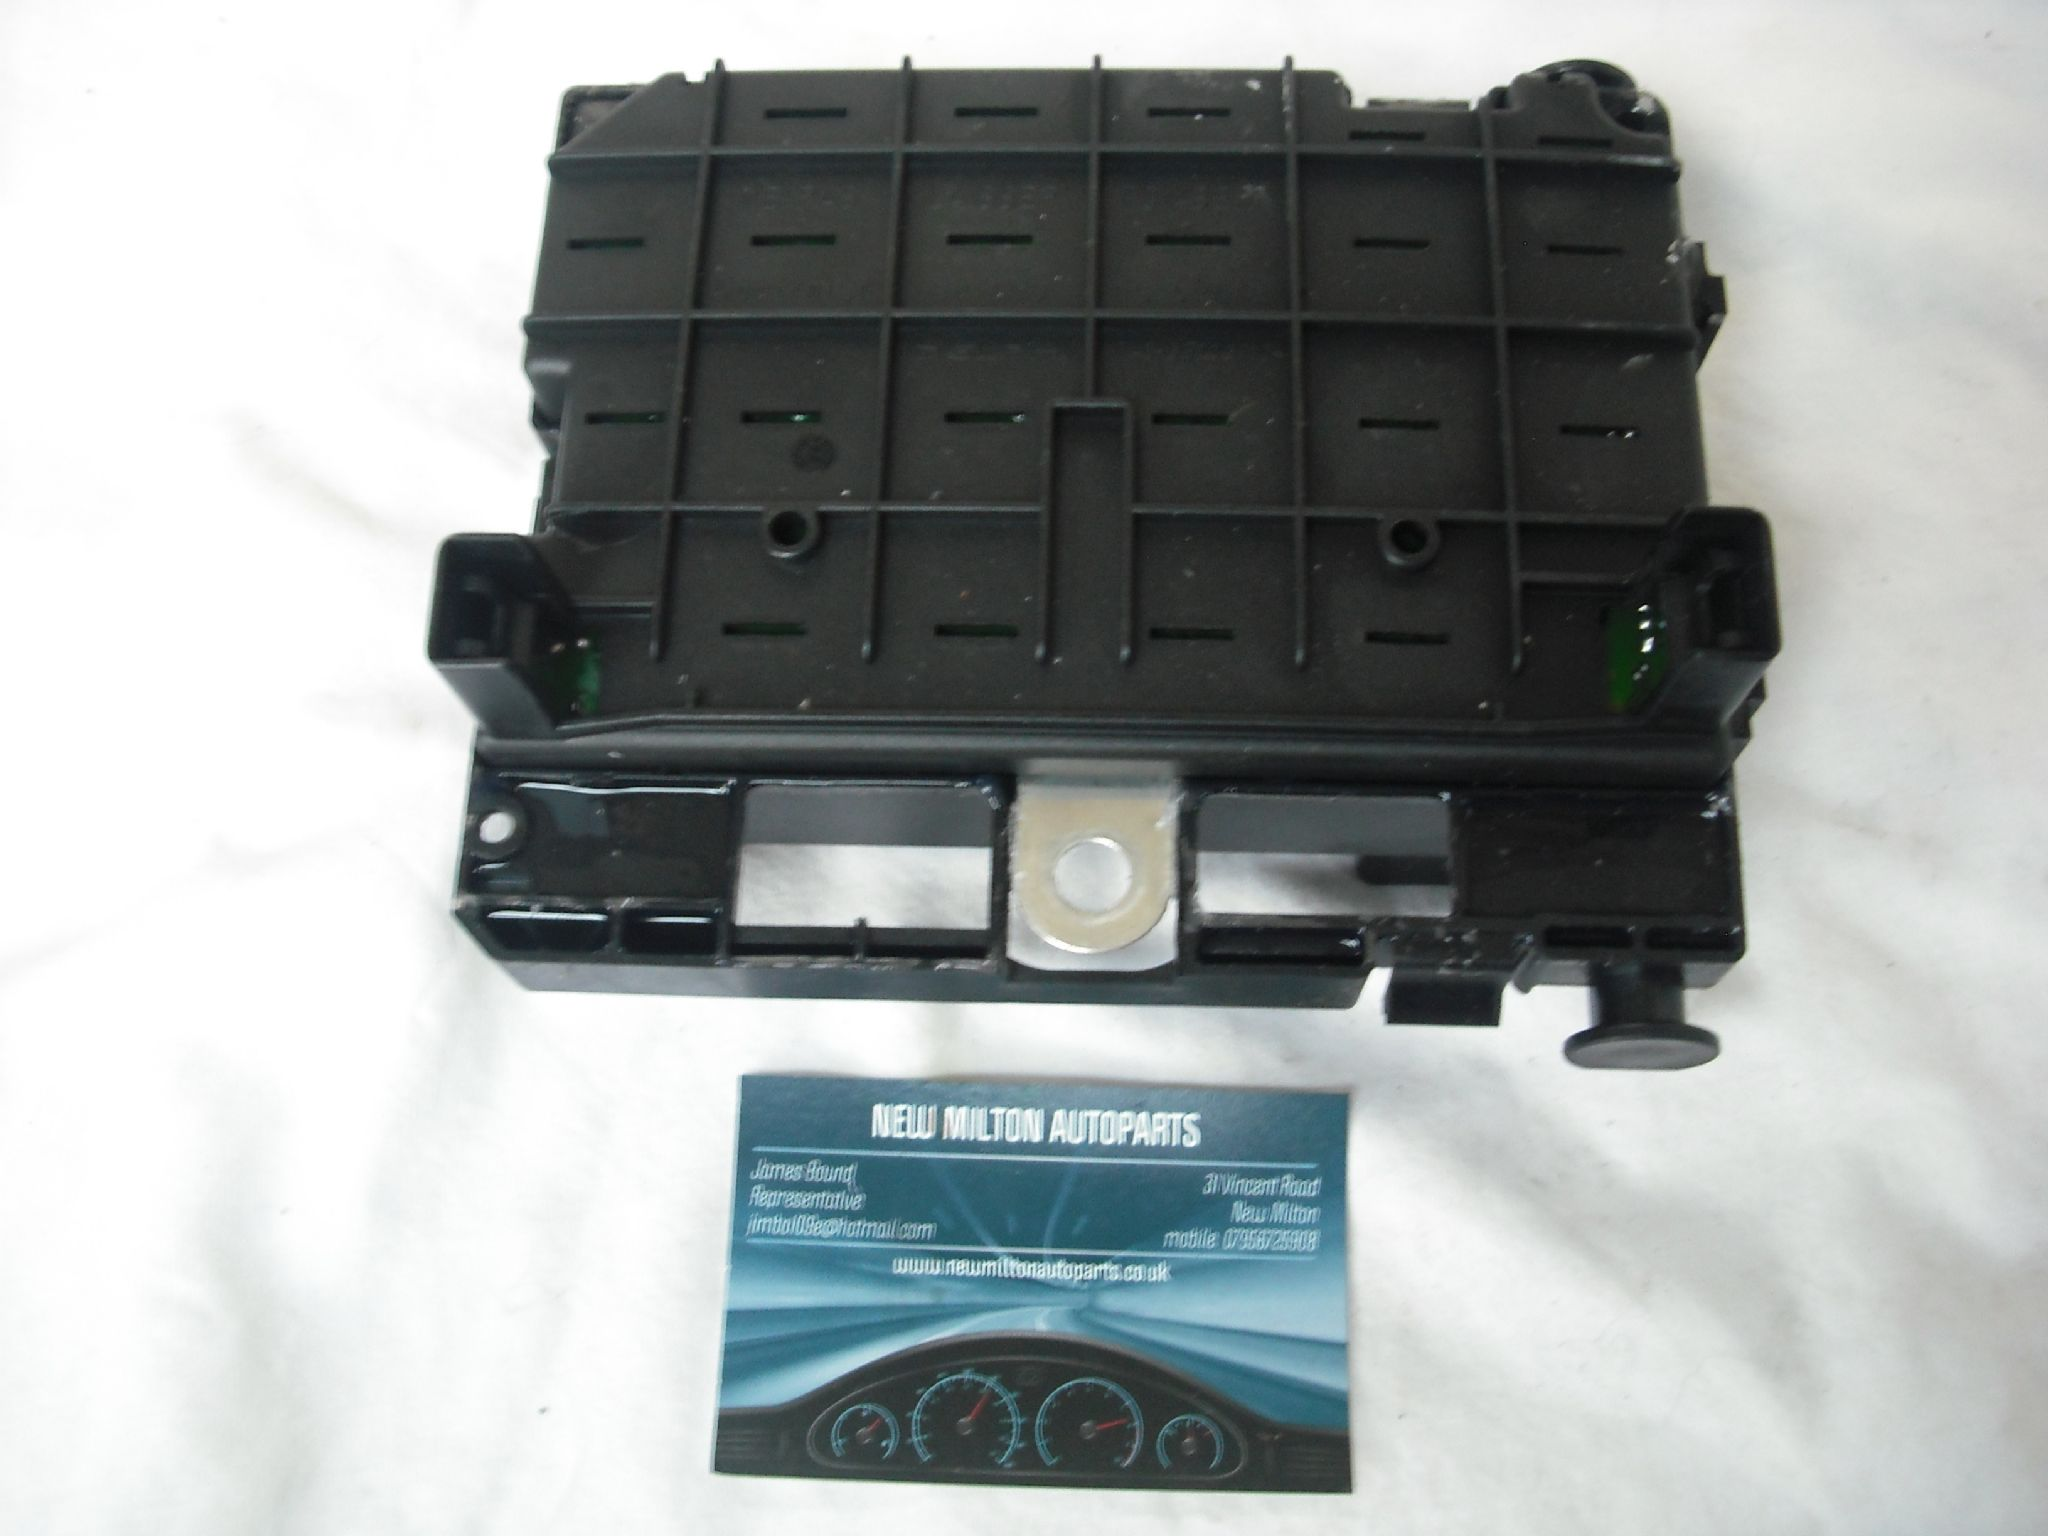 a genuine peugeot 307 1.4 1.6 2.0 engine bay fuse box control module 9646405180 bsm b2 delphi [2] 6701 p genuine peugeot 307 1 4 1 6 2 0 engine bay fuse box control module delphi fuse box at edmiracle.co